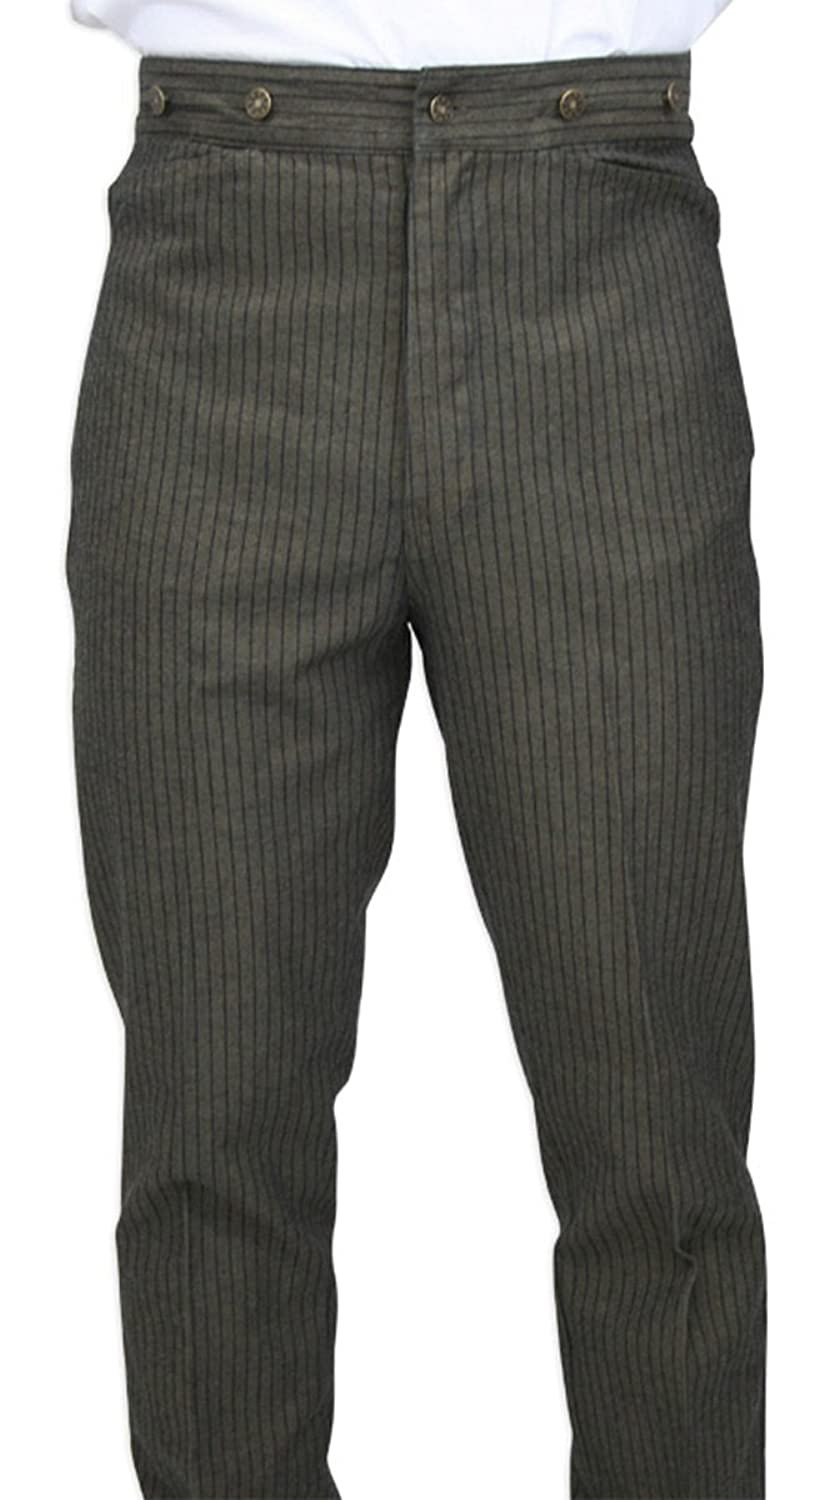 1910s Men's Edwardian Fashion and Clothing Guide High Waist Cotton Ludlow Striped Trousers $59.95 AT vintagedancer.com